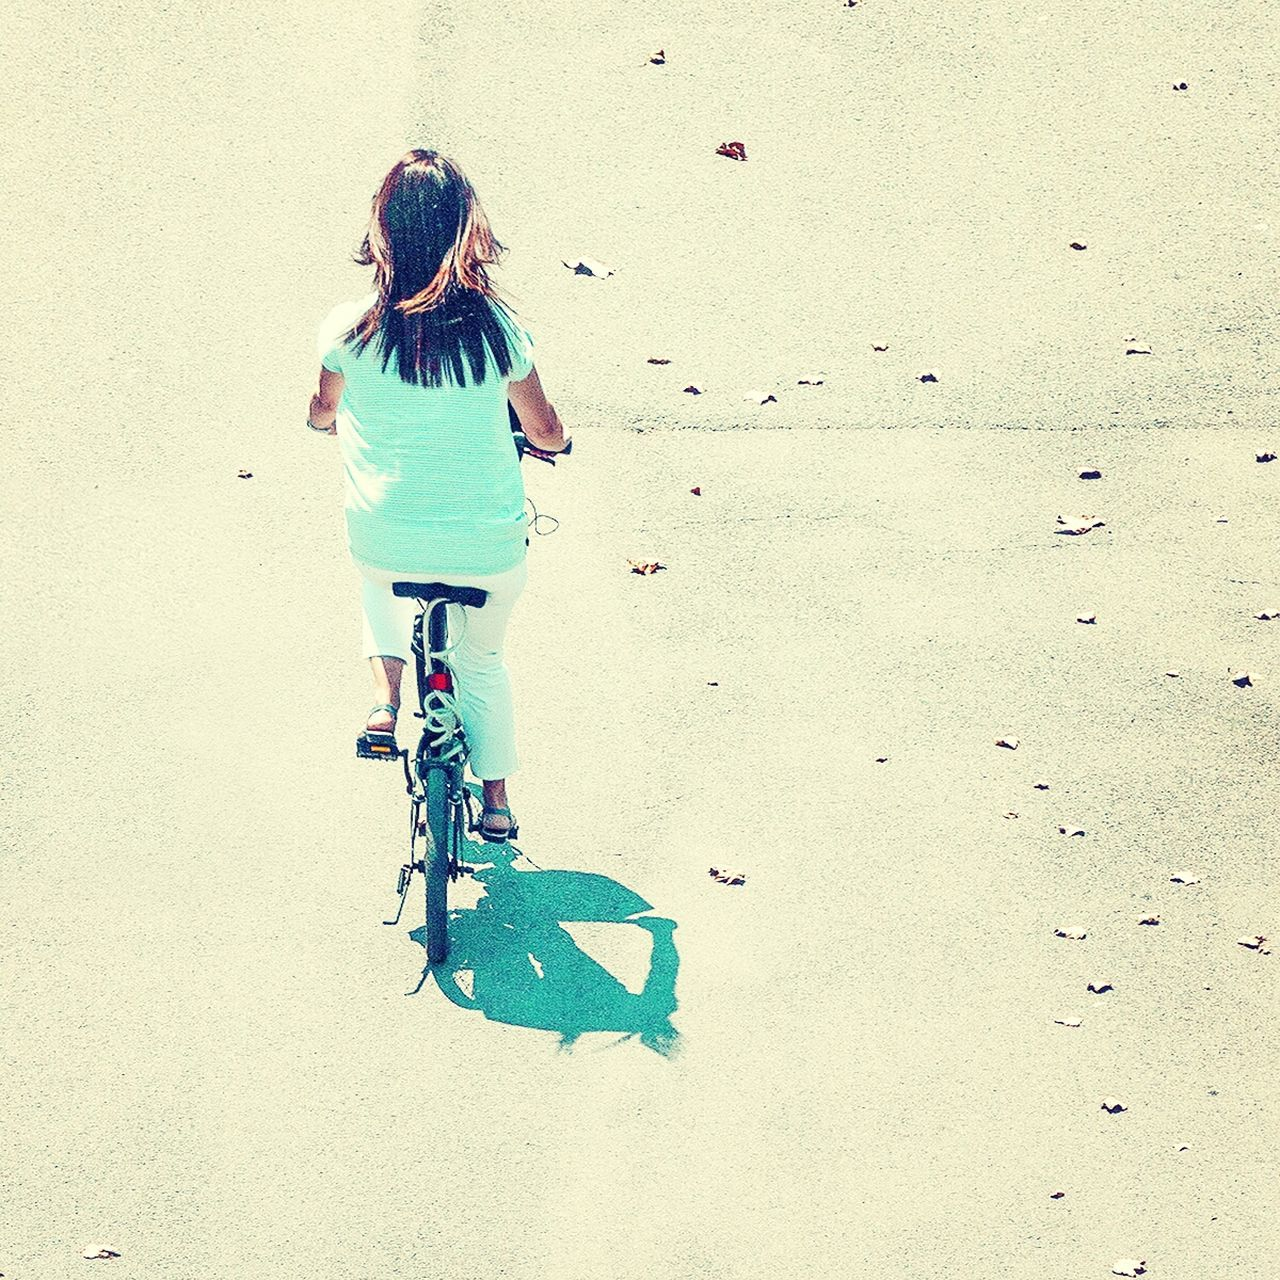 Ride like the wind | Pedalear como el viento Landscape Enjoying Life Urbanexploration Minimalism